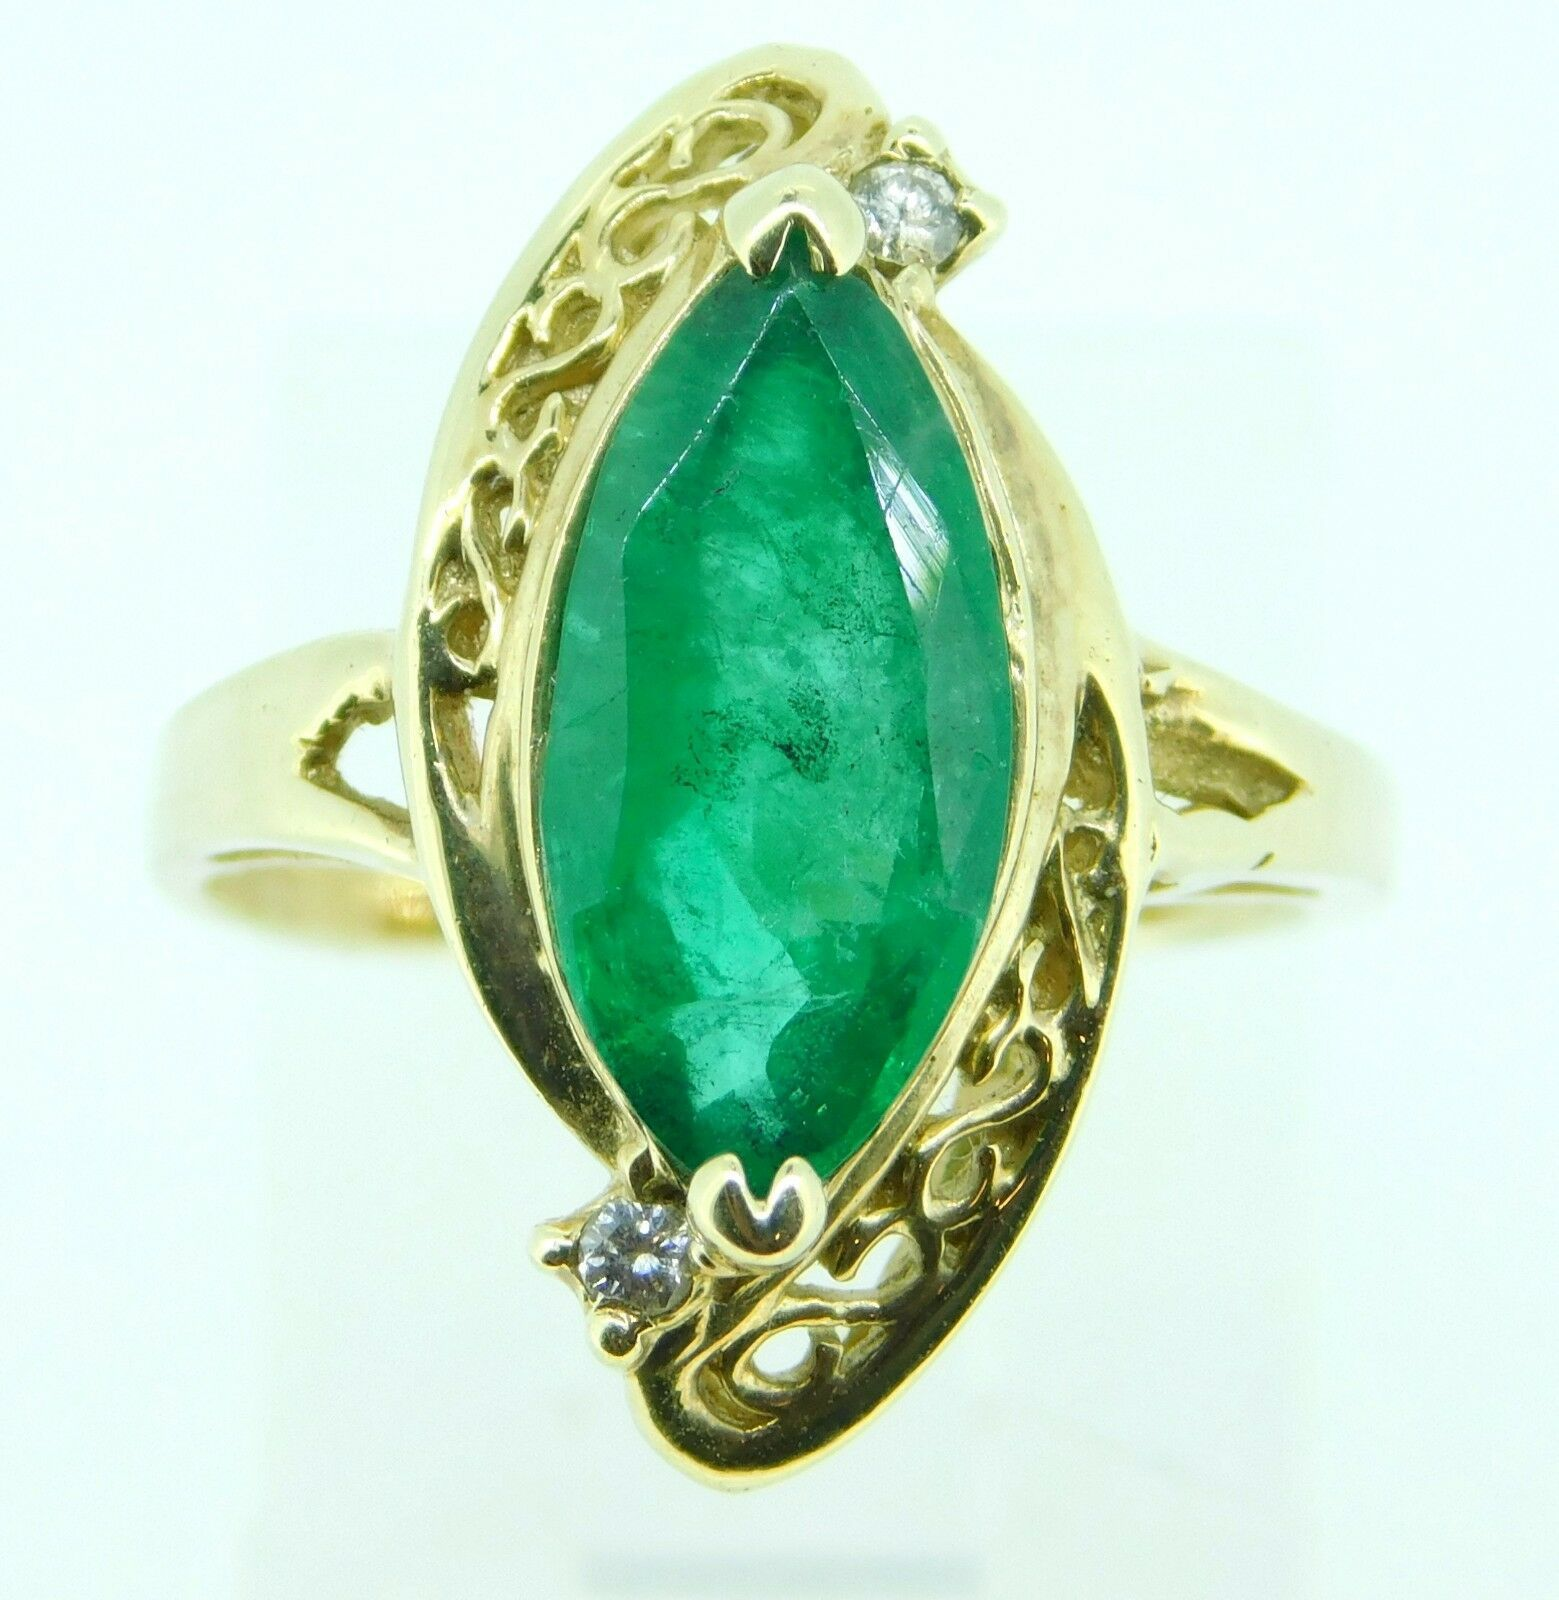 Primary image for 14k 2.25ct Marquise Genuine Natural Emerald Ring with Diamonds (#J4300)